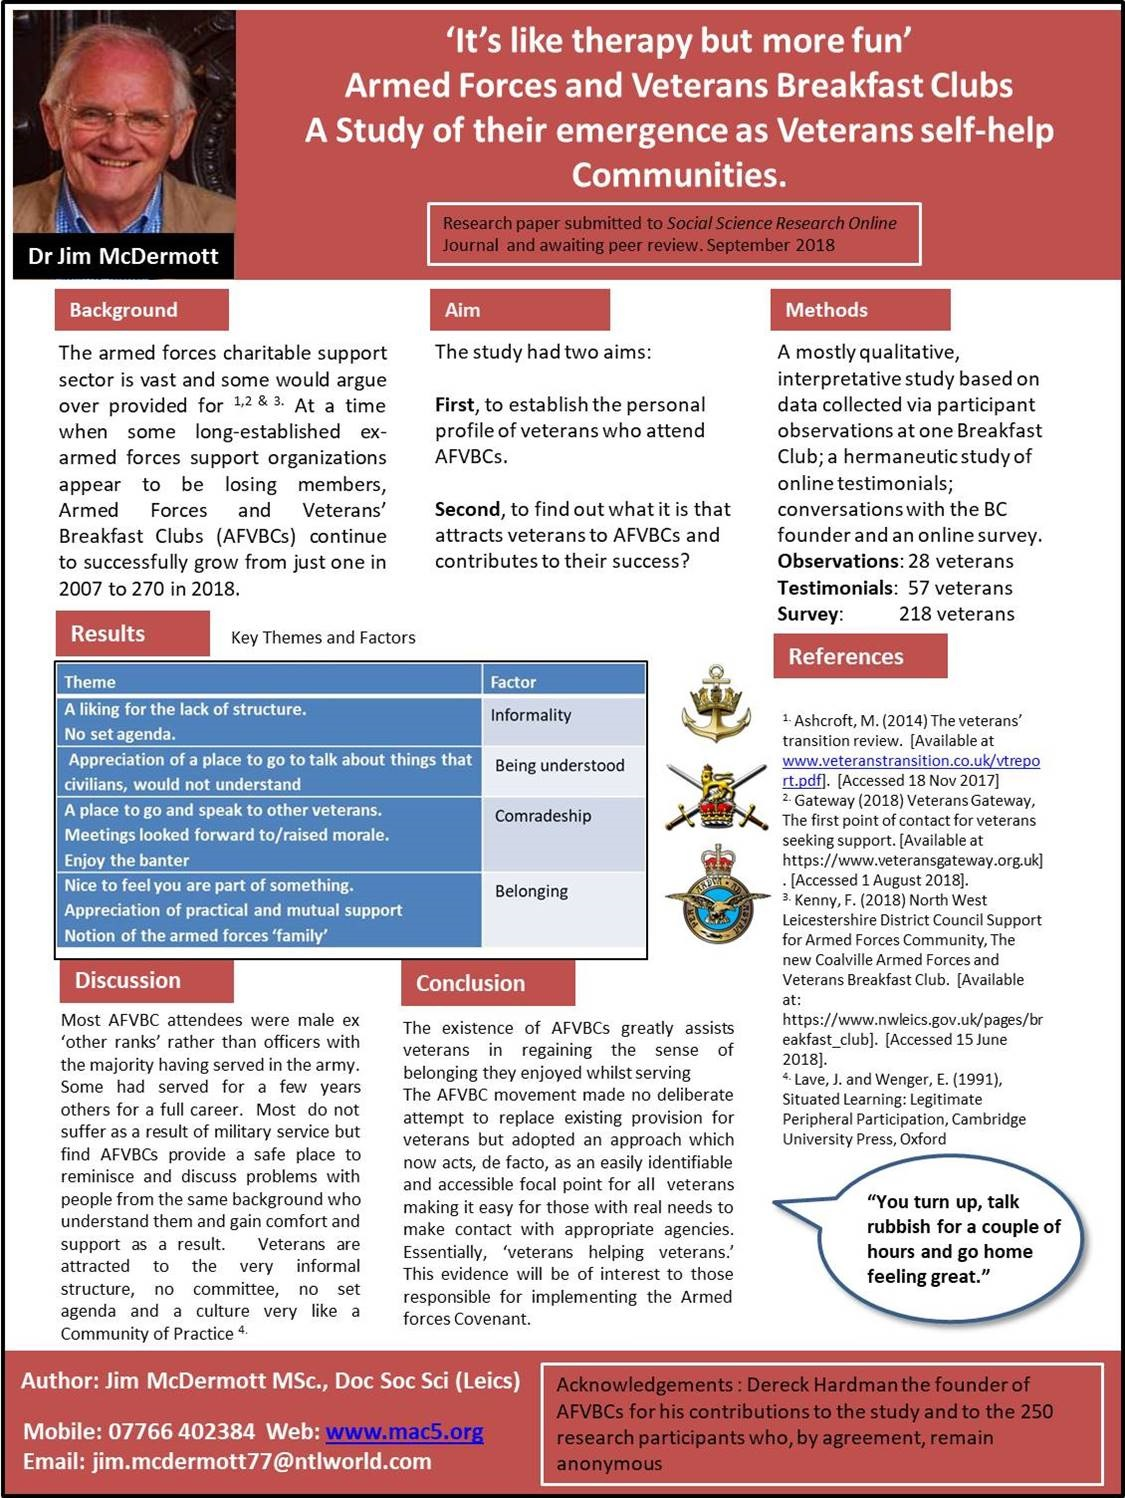 Poster first displayed at Forces in Mind Trust (FiMT) Conference 11 Oct 2018